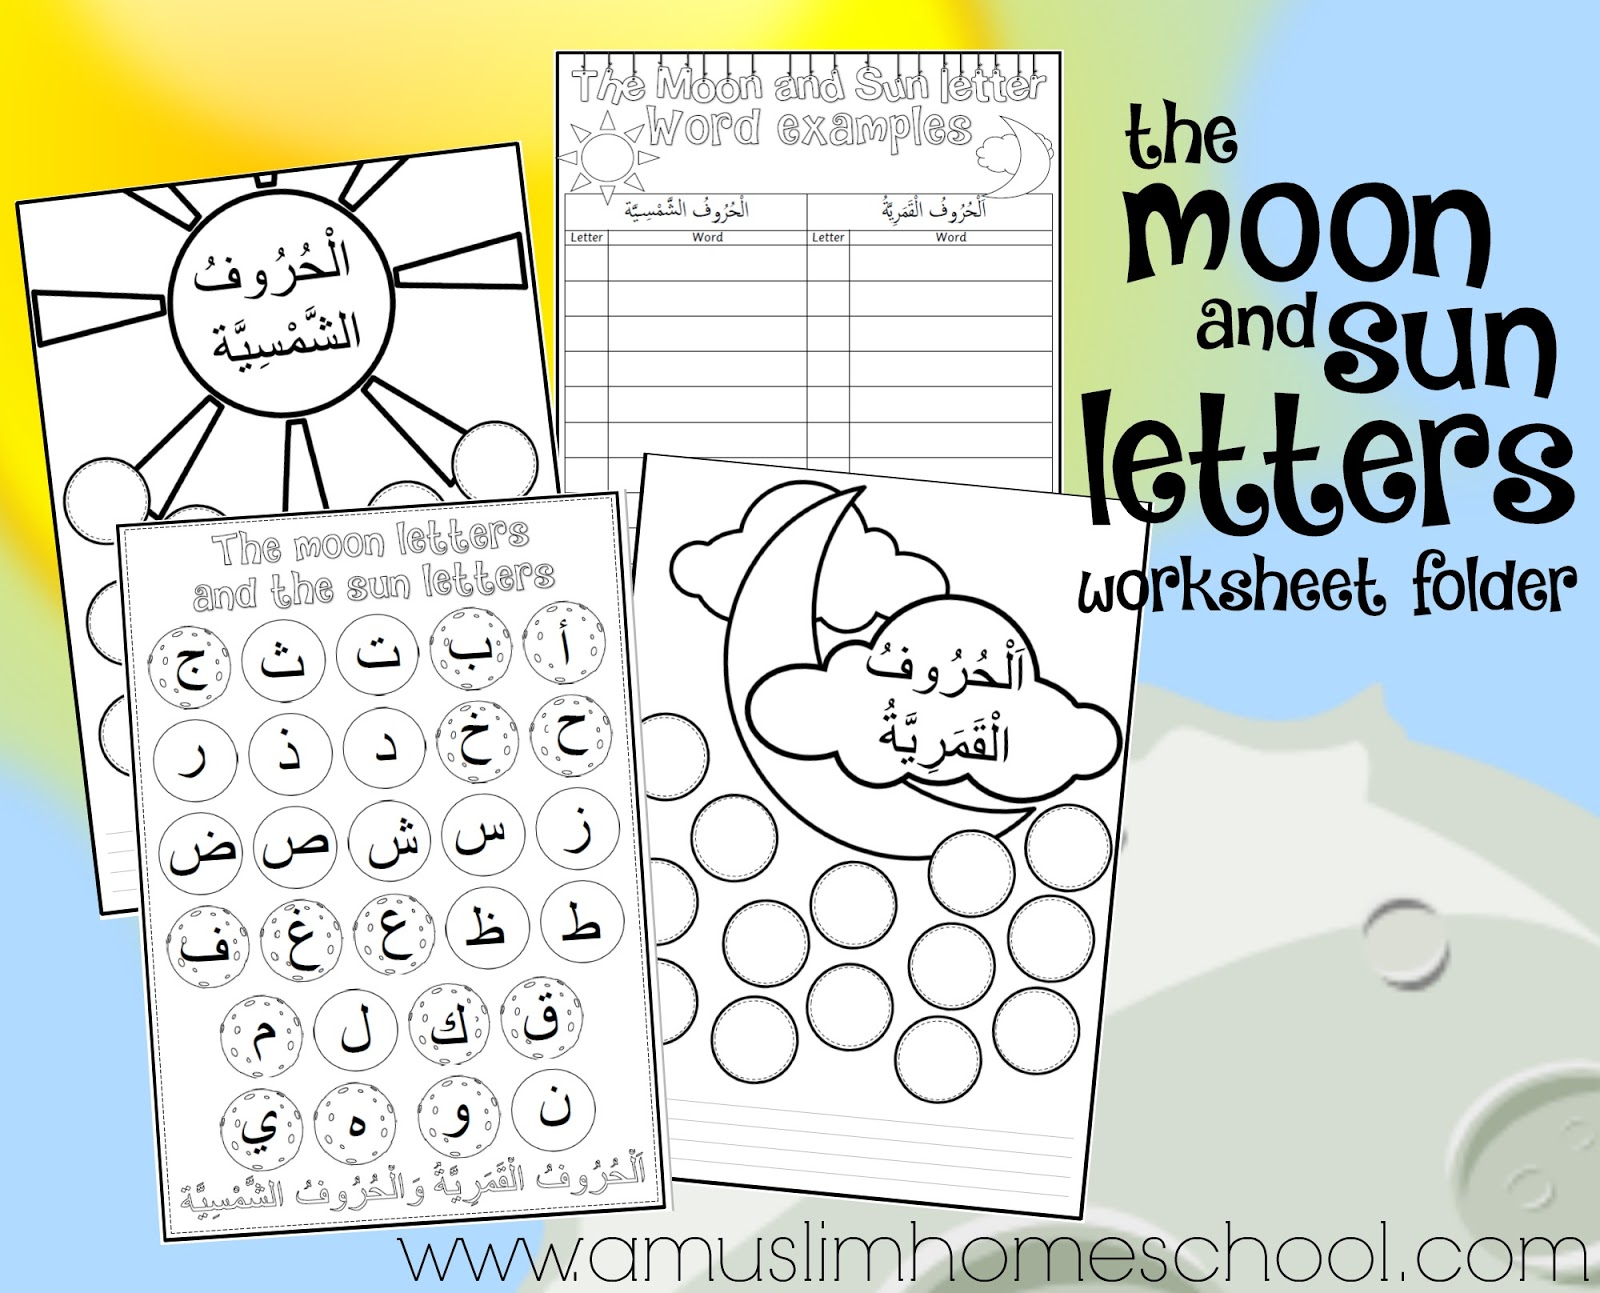 a muslim homeschool Printable Moon and Sun letter worksheet – Kids Worksheet